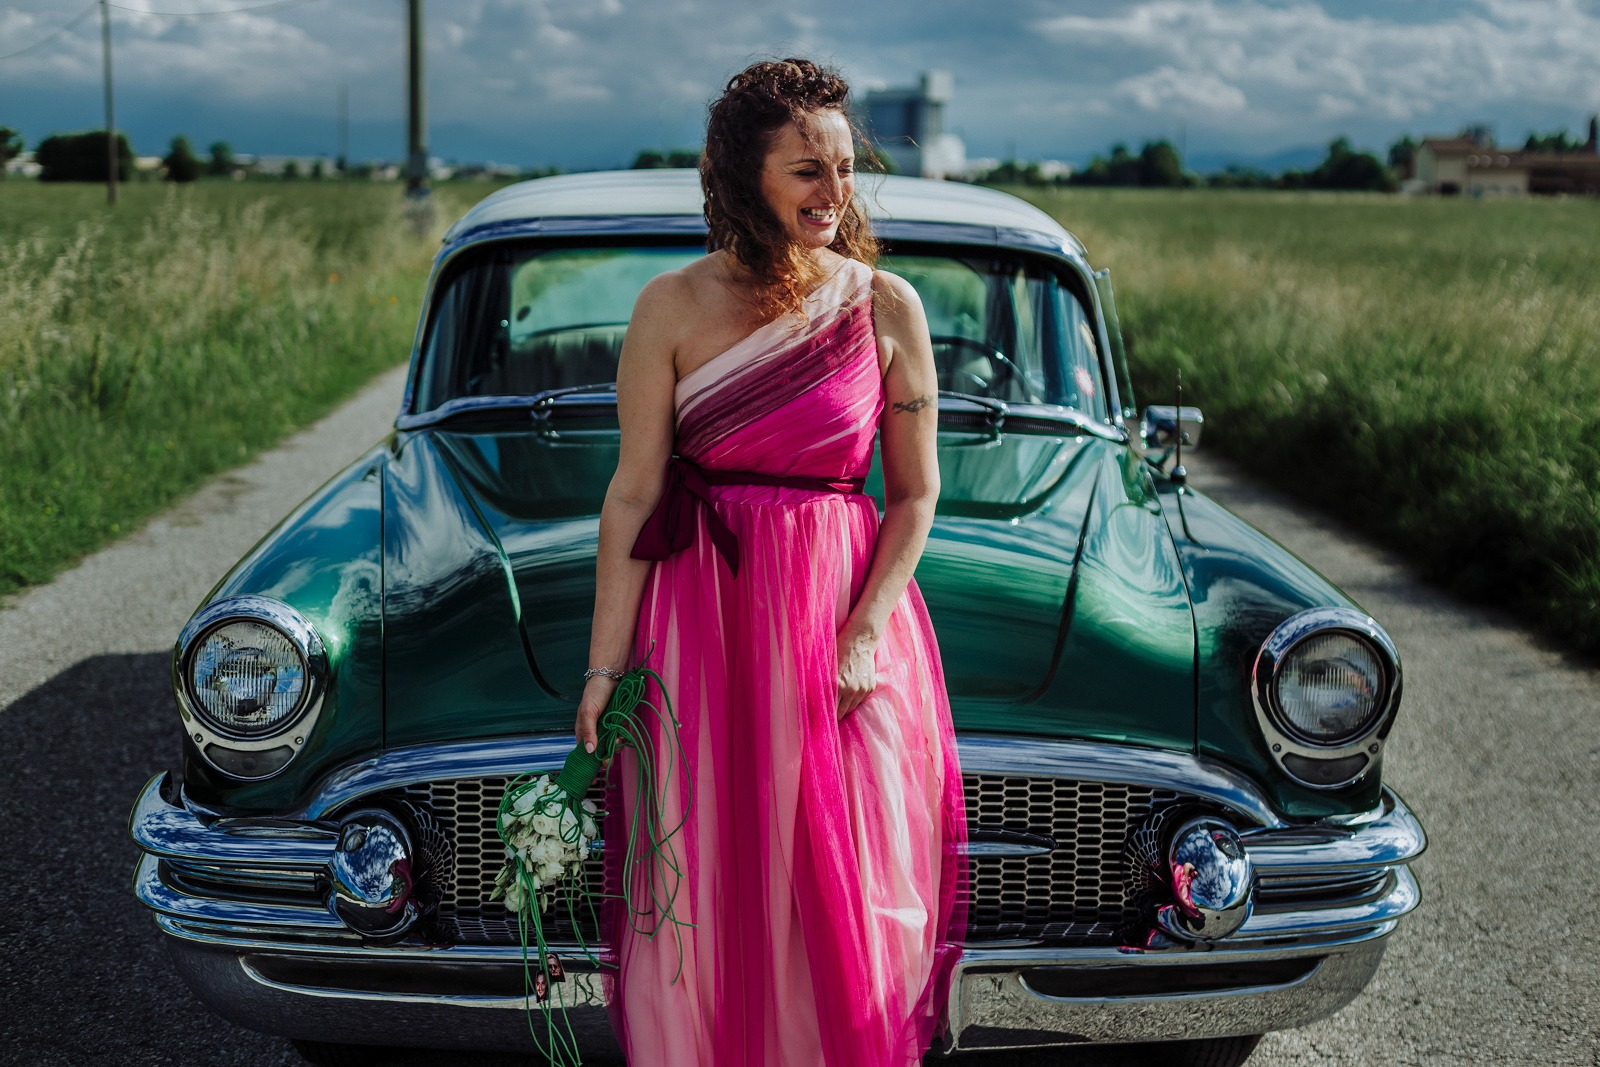 bride-smile-wedding-italy-oldcar-flowers-countryside-dress